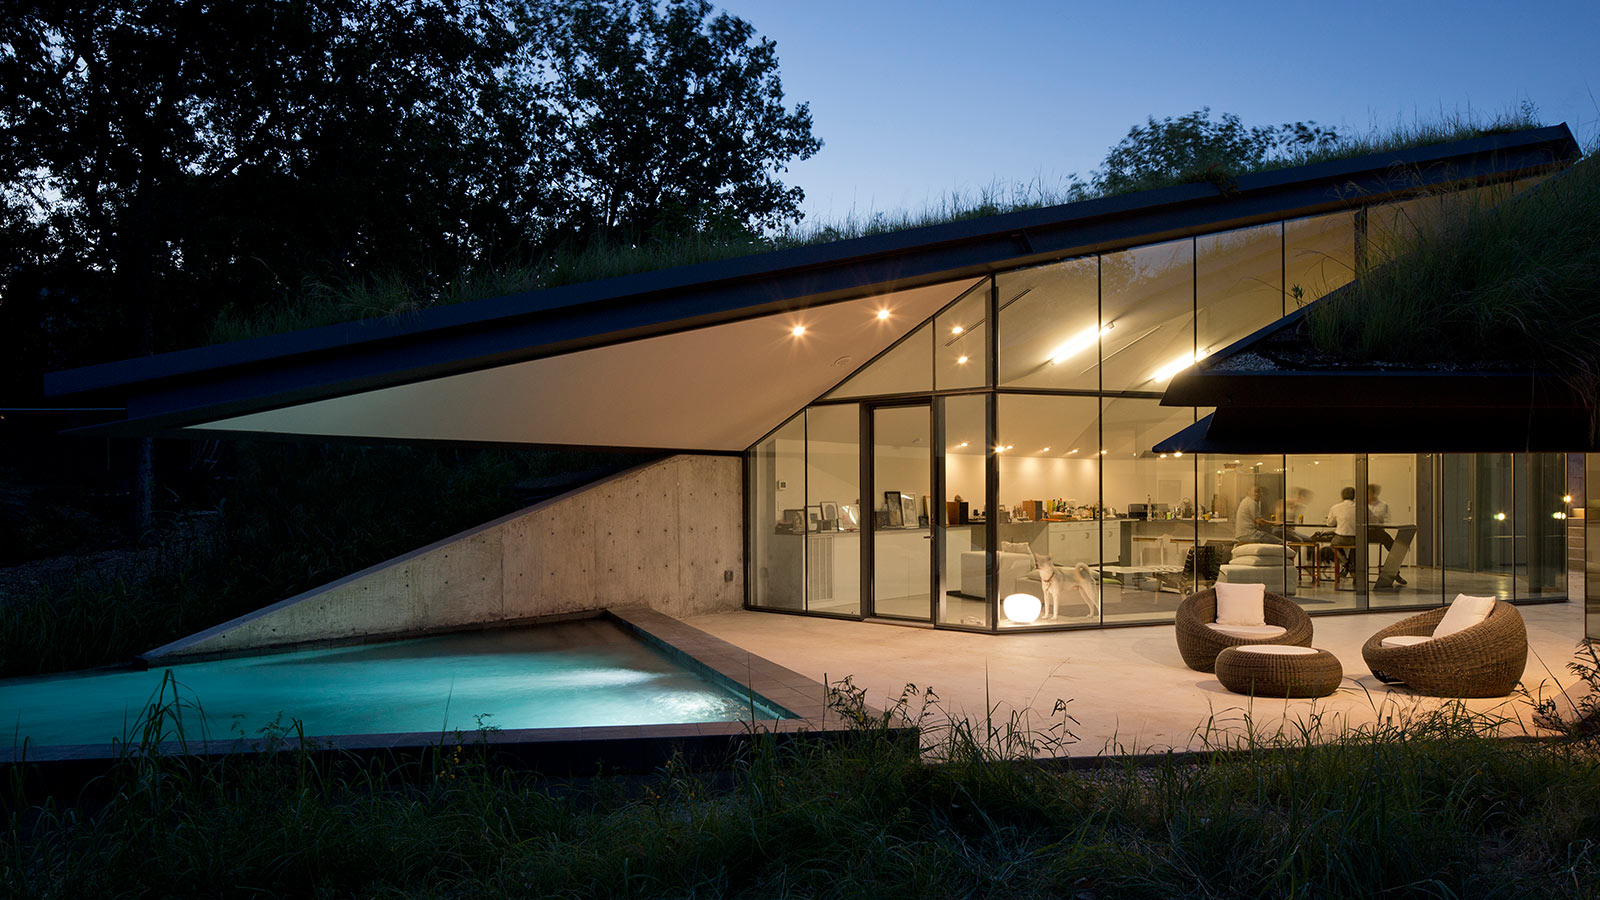 Edgeland Residence: A Futuristic House With A Smart Pool